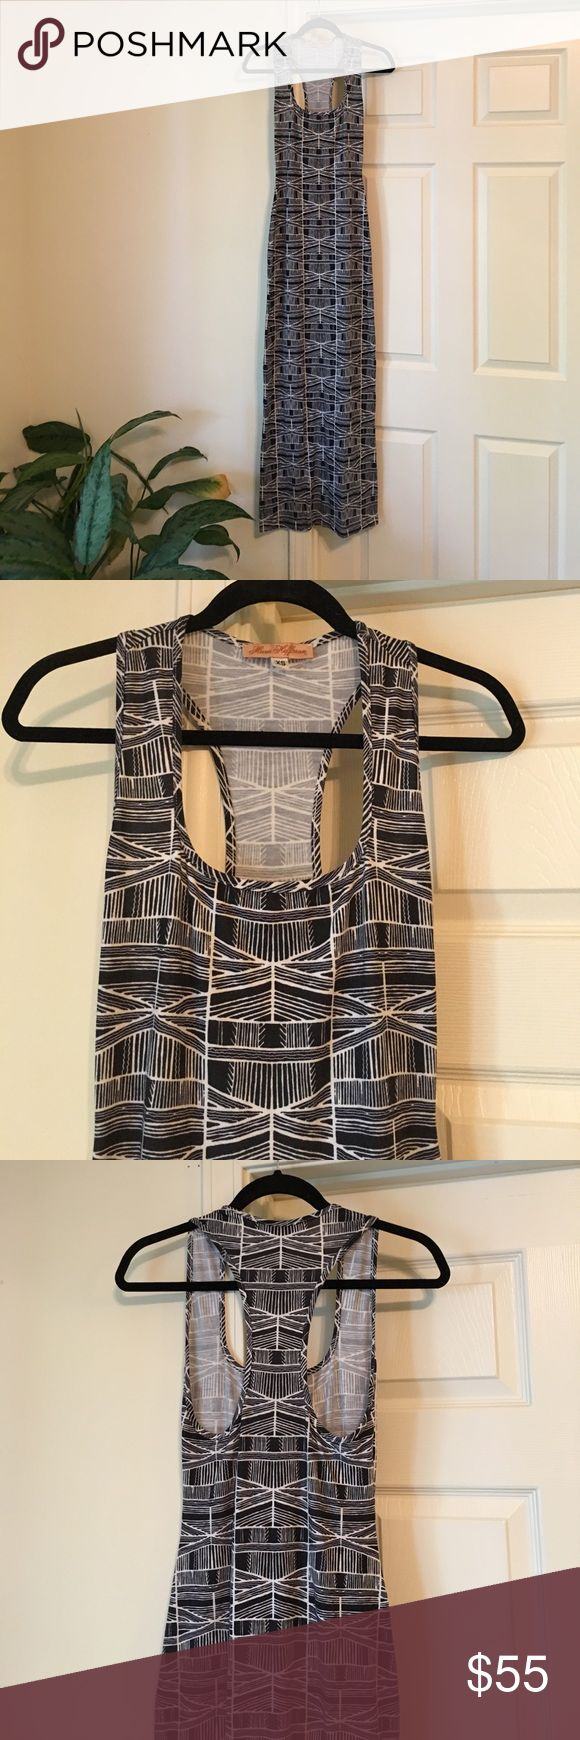 Mara Hoffman Maxi Dress Mara Hoffman Maxi stretch dress with black and white tribal print. This dress is SO comfortable and easy to throw on in the summer. Size marked as xs but could fit xs-small. Mara Hoffman Dresses Maxi